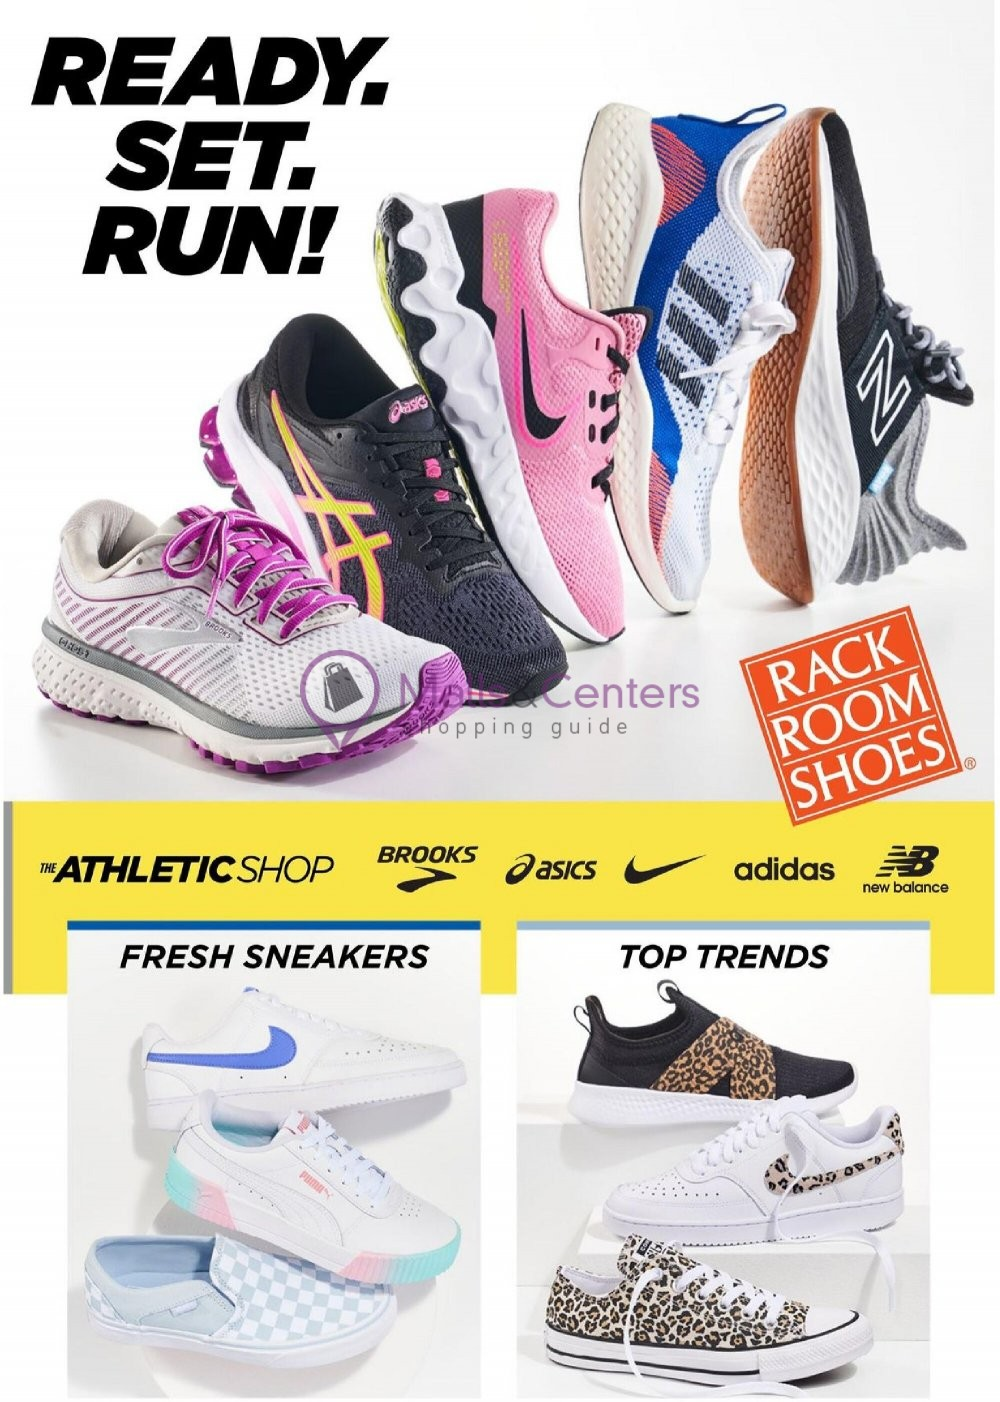 weekly ads Rack Room Shoes - page 1 - mallscenters.com